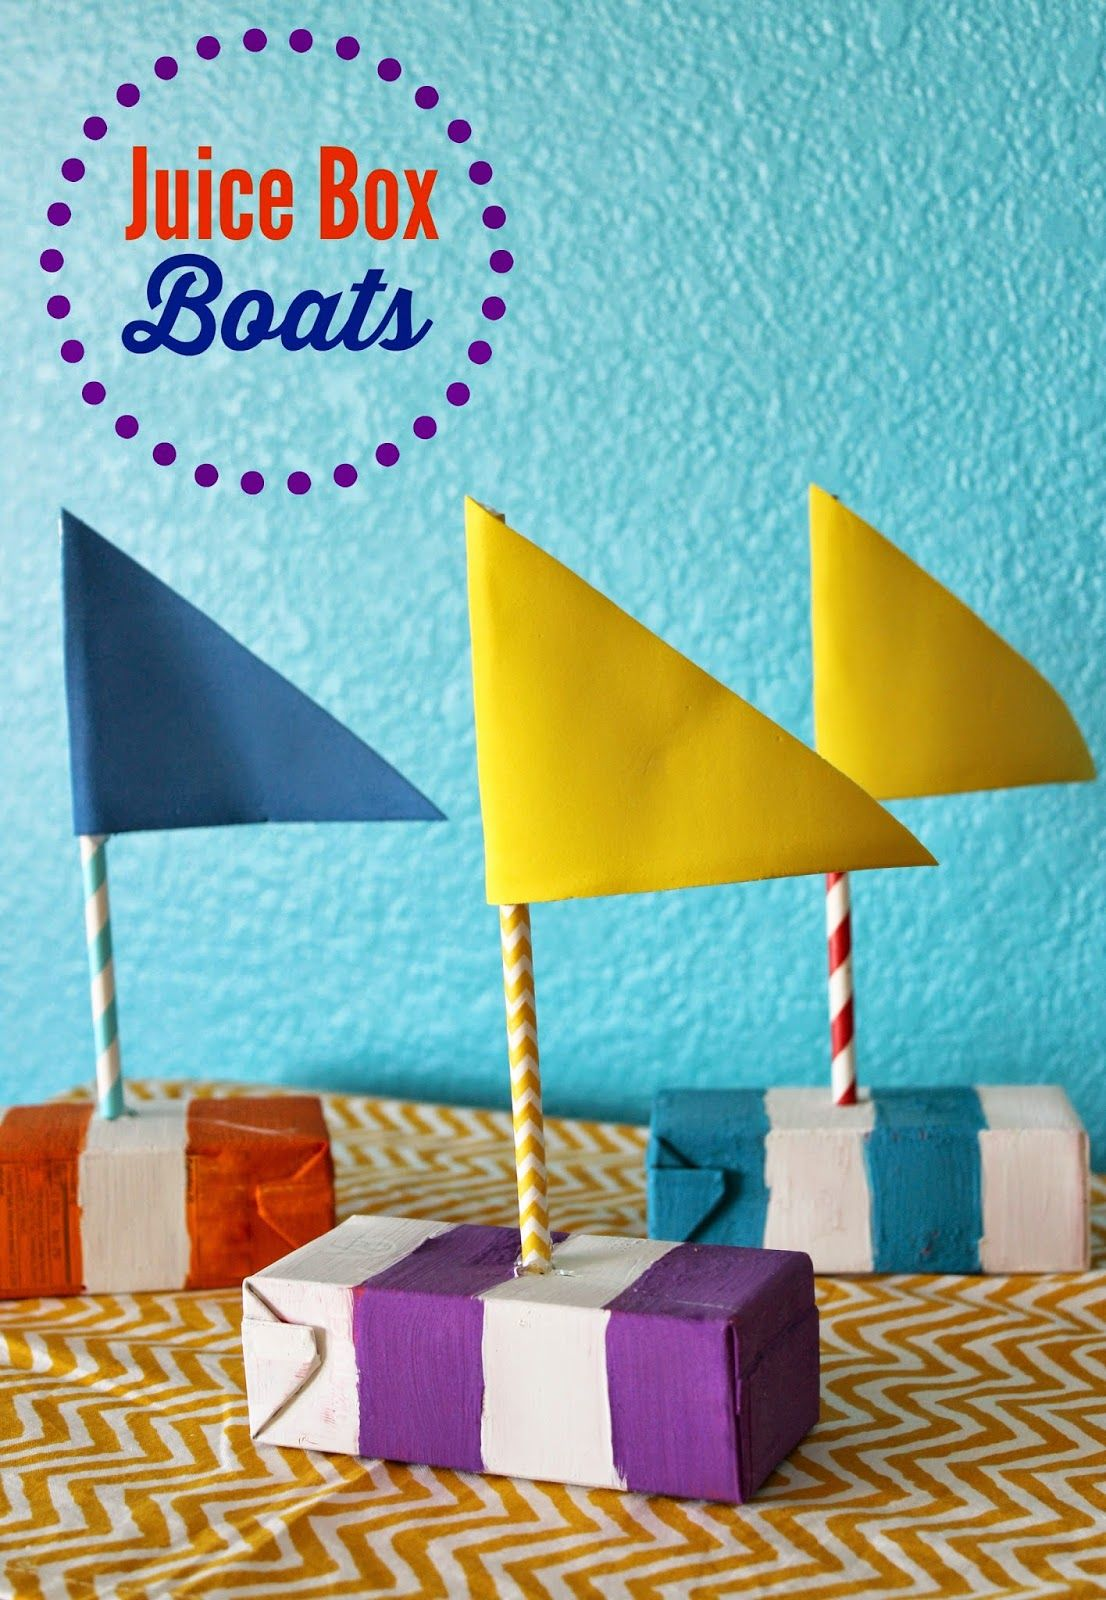 Juice Box Boats